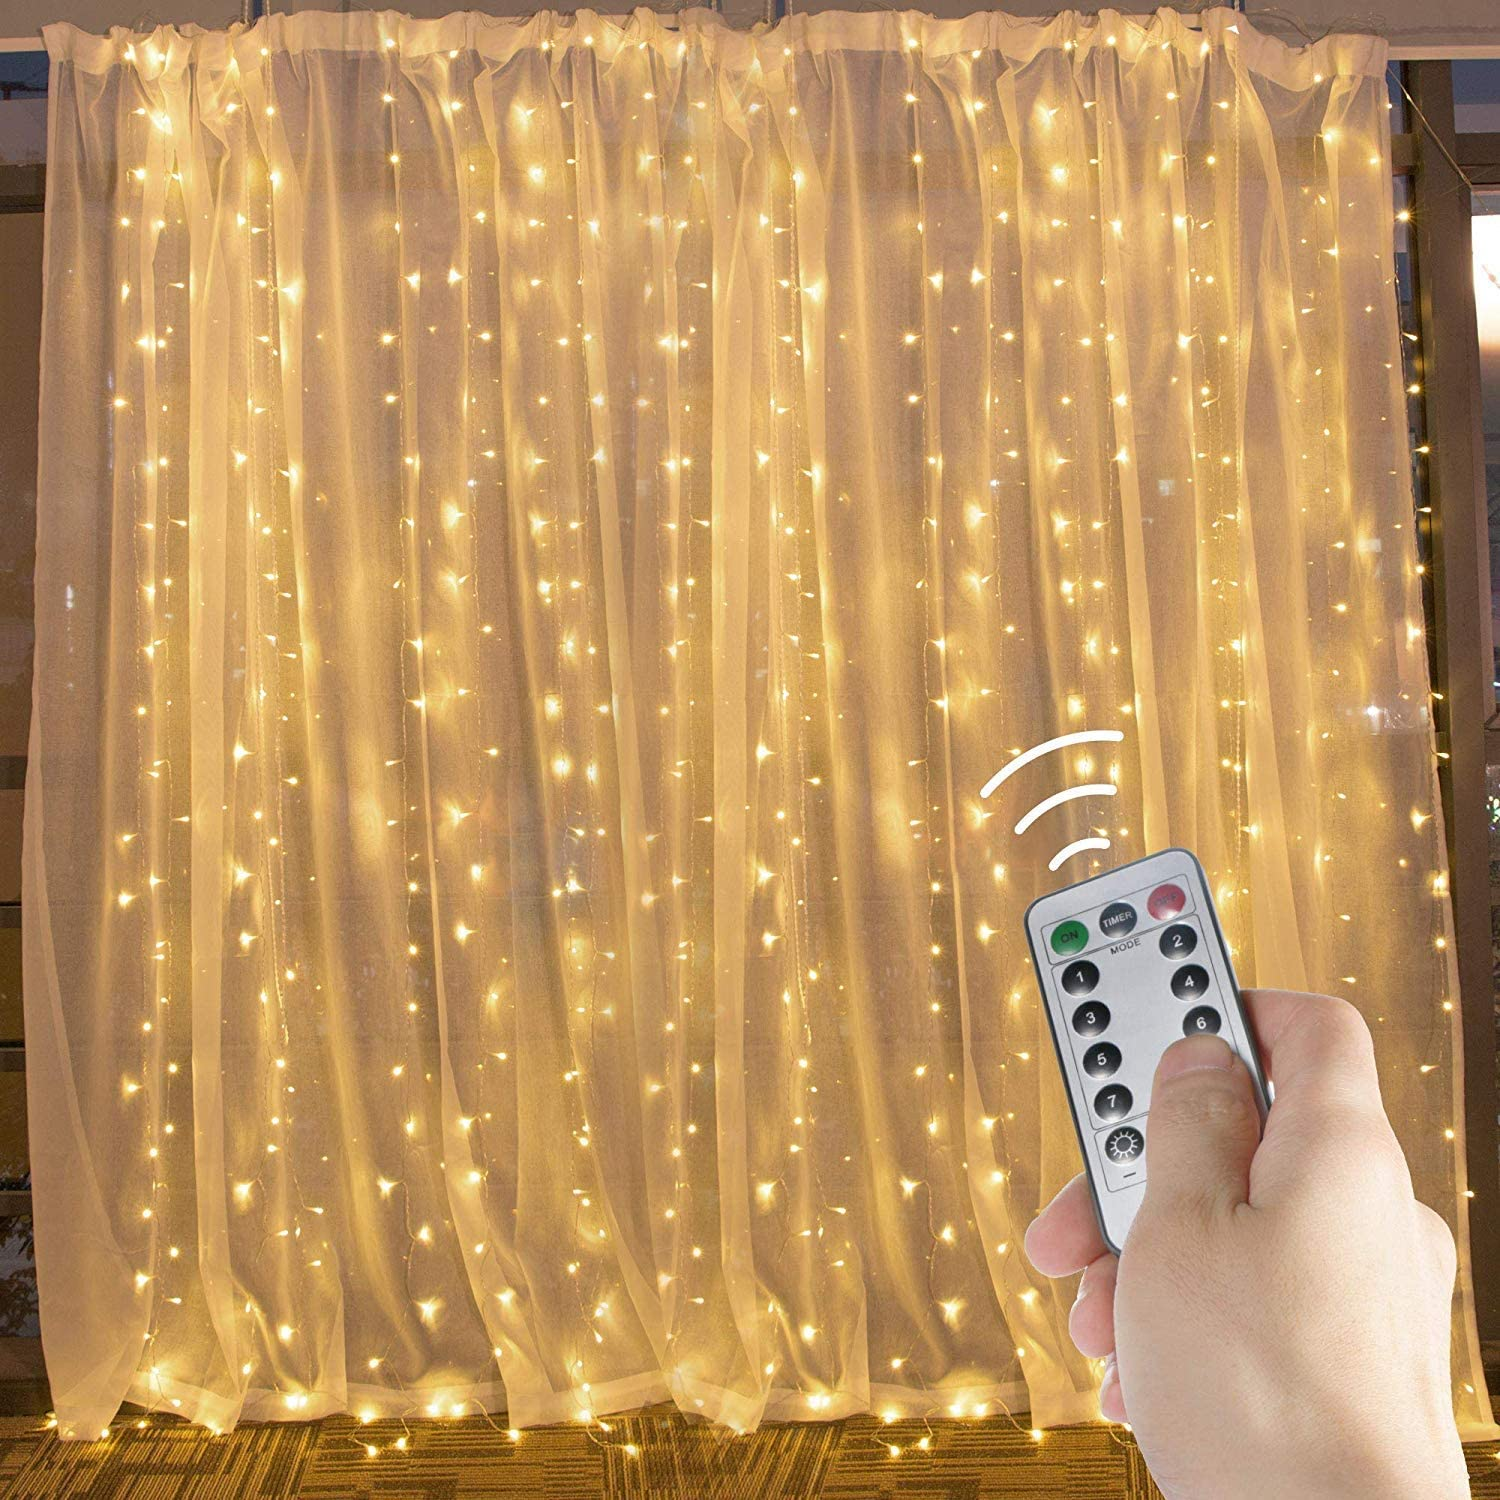 LED Curtain Lights Warm Store White Wholesale 9.8 Remote 300 w Control Led Feet